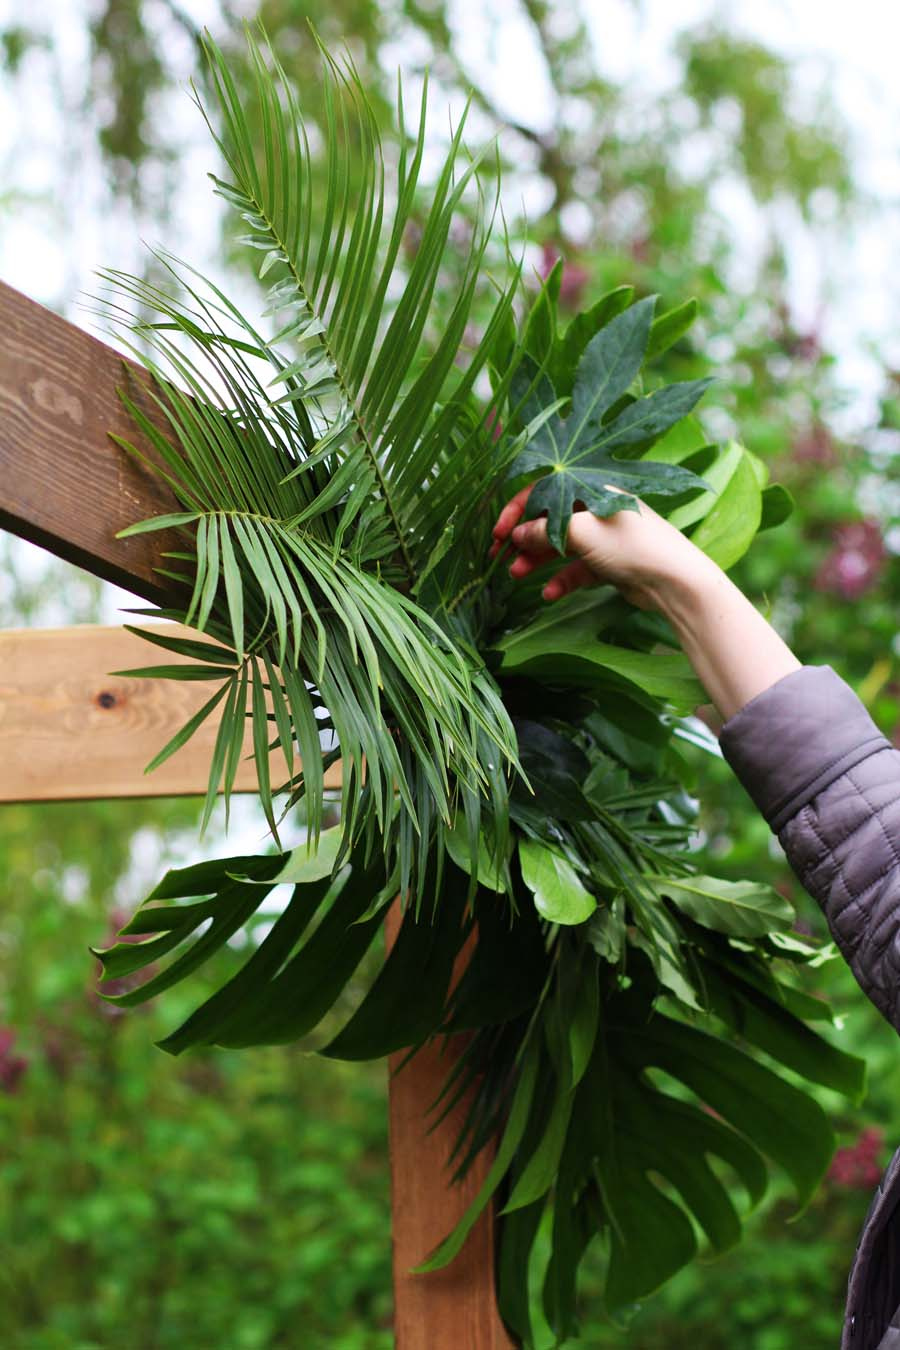 How To Make Your Own Stylish & Affordable Foliage 'Floral' Arch